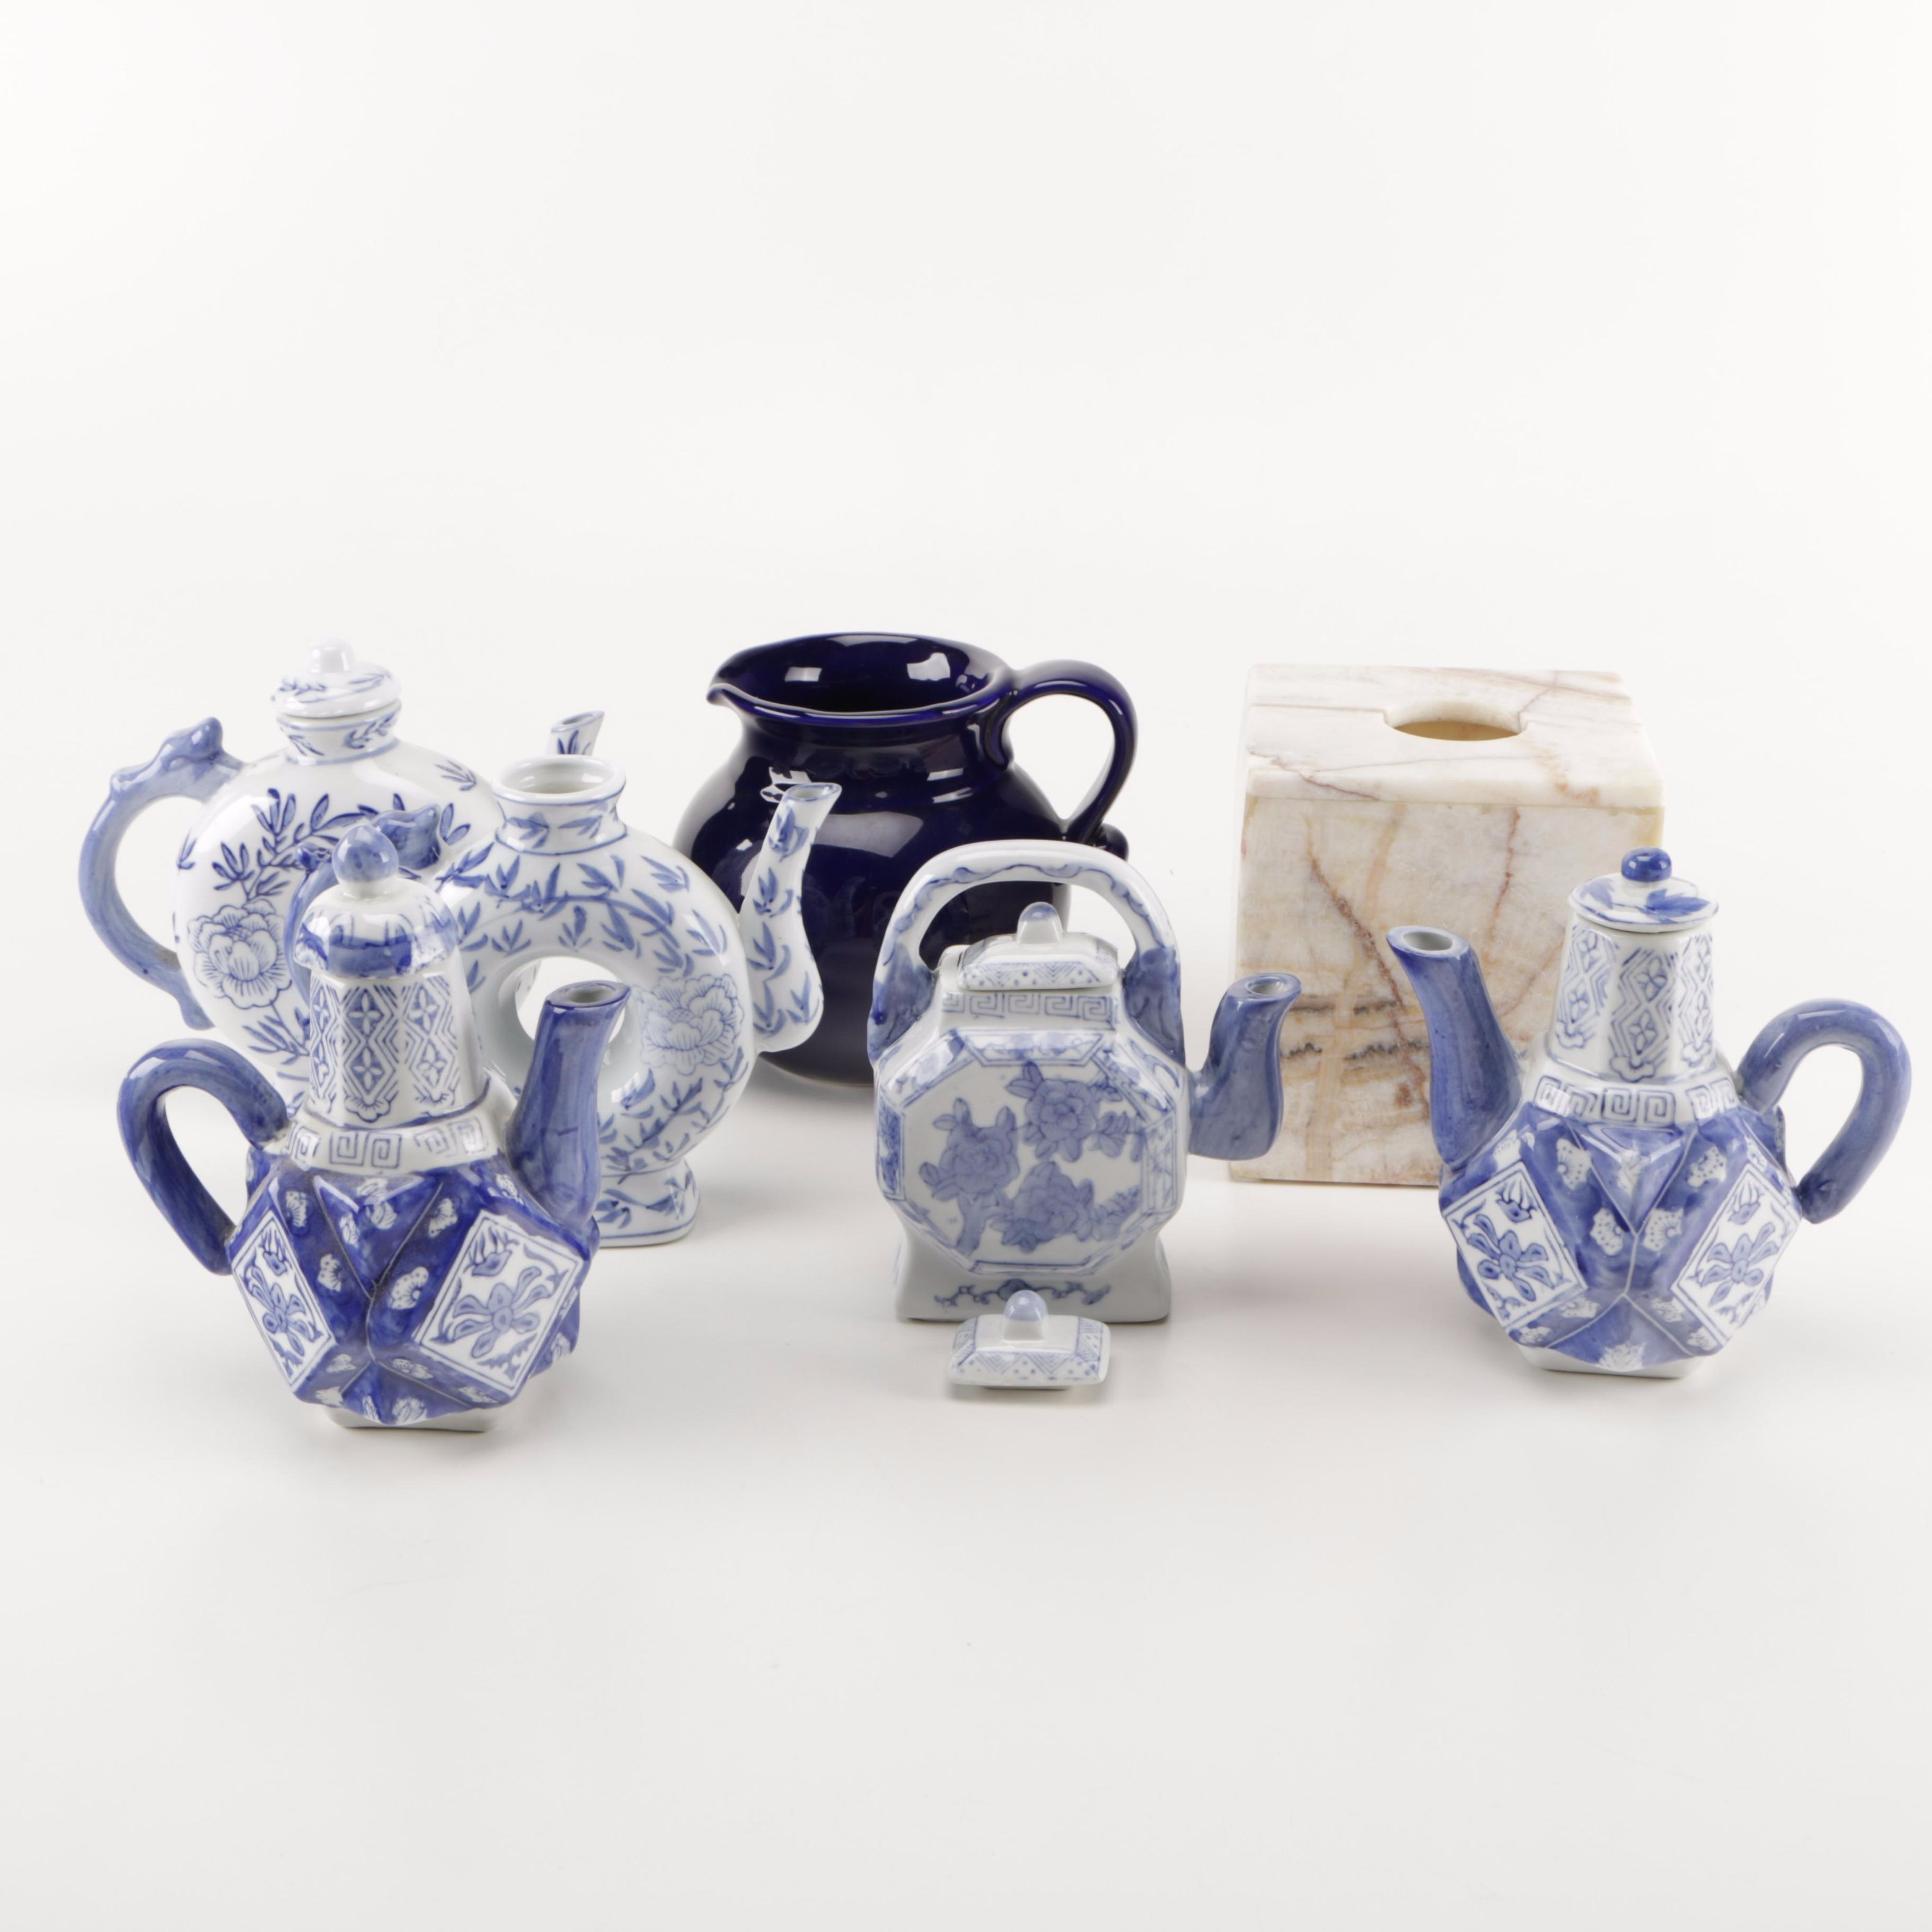 Assortment of Seven Decorative Objects Including Blue and White Teapots